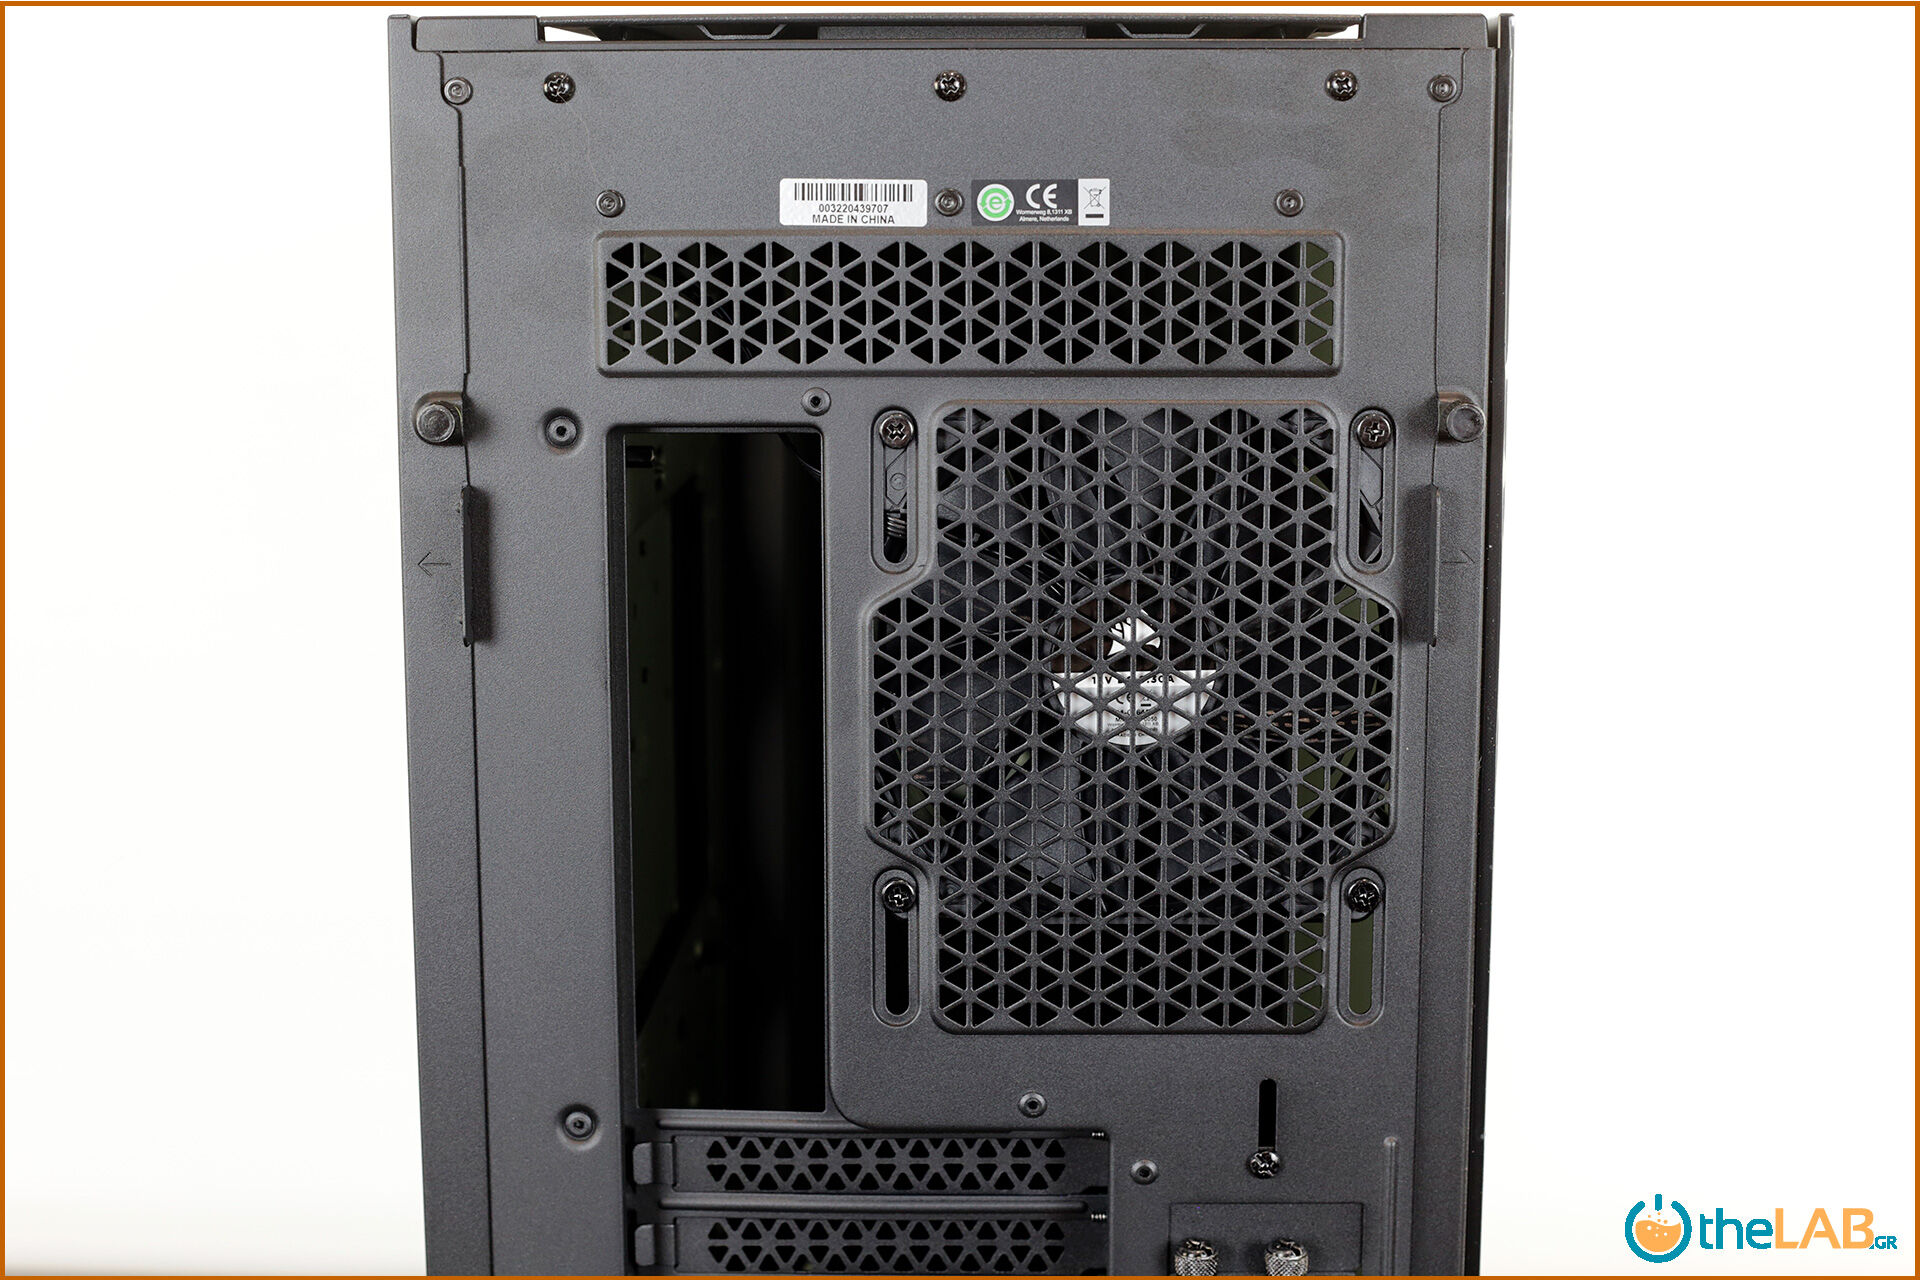 Corsair_icue_5000D__case_smart_exterior_interior_mid_tower_gaming_case_smart_review_image635.jpg